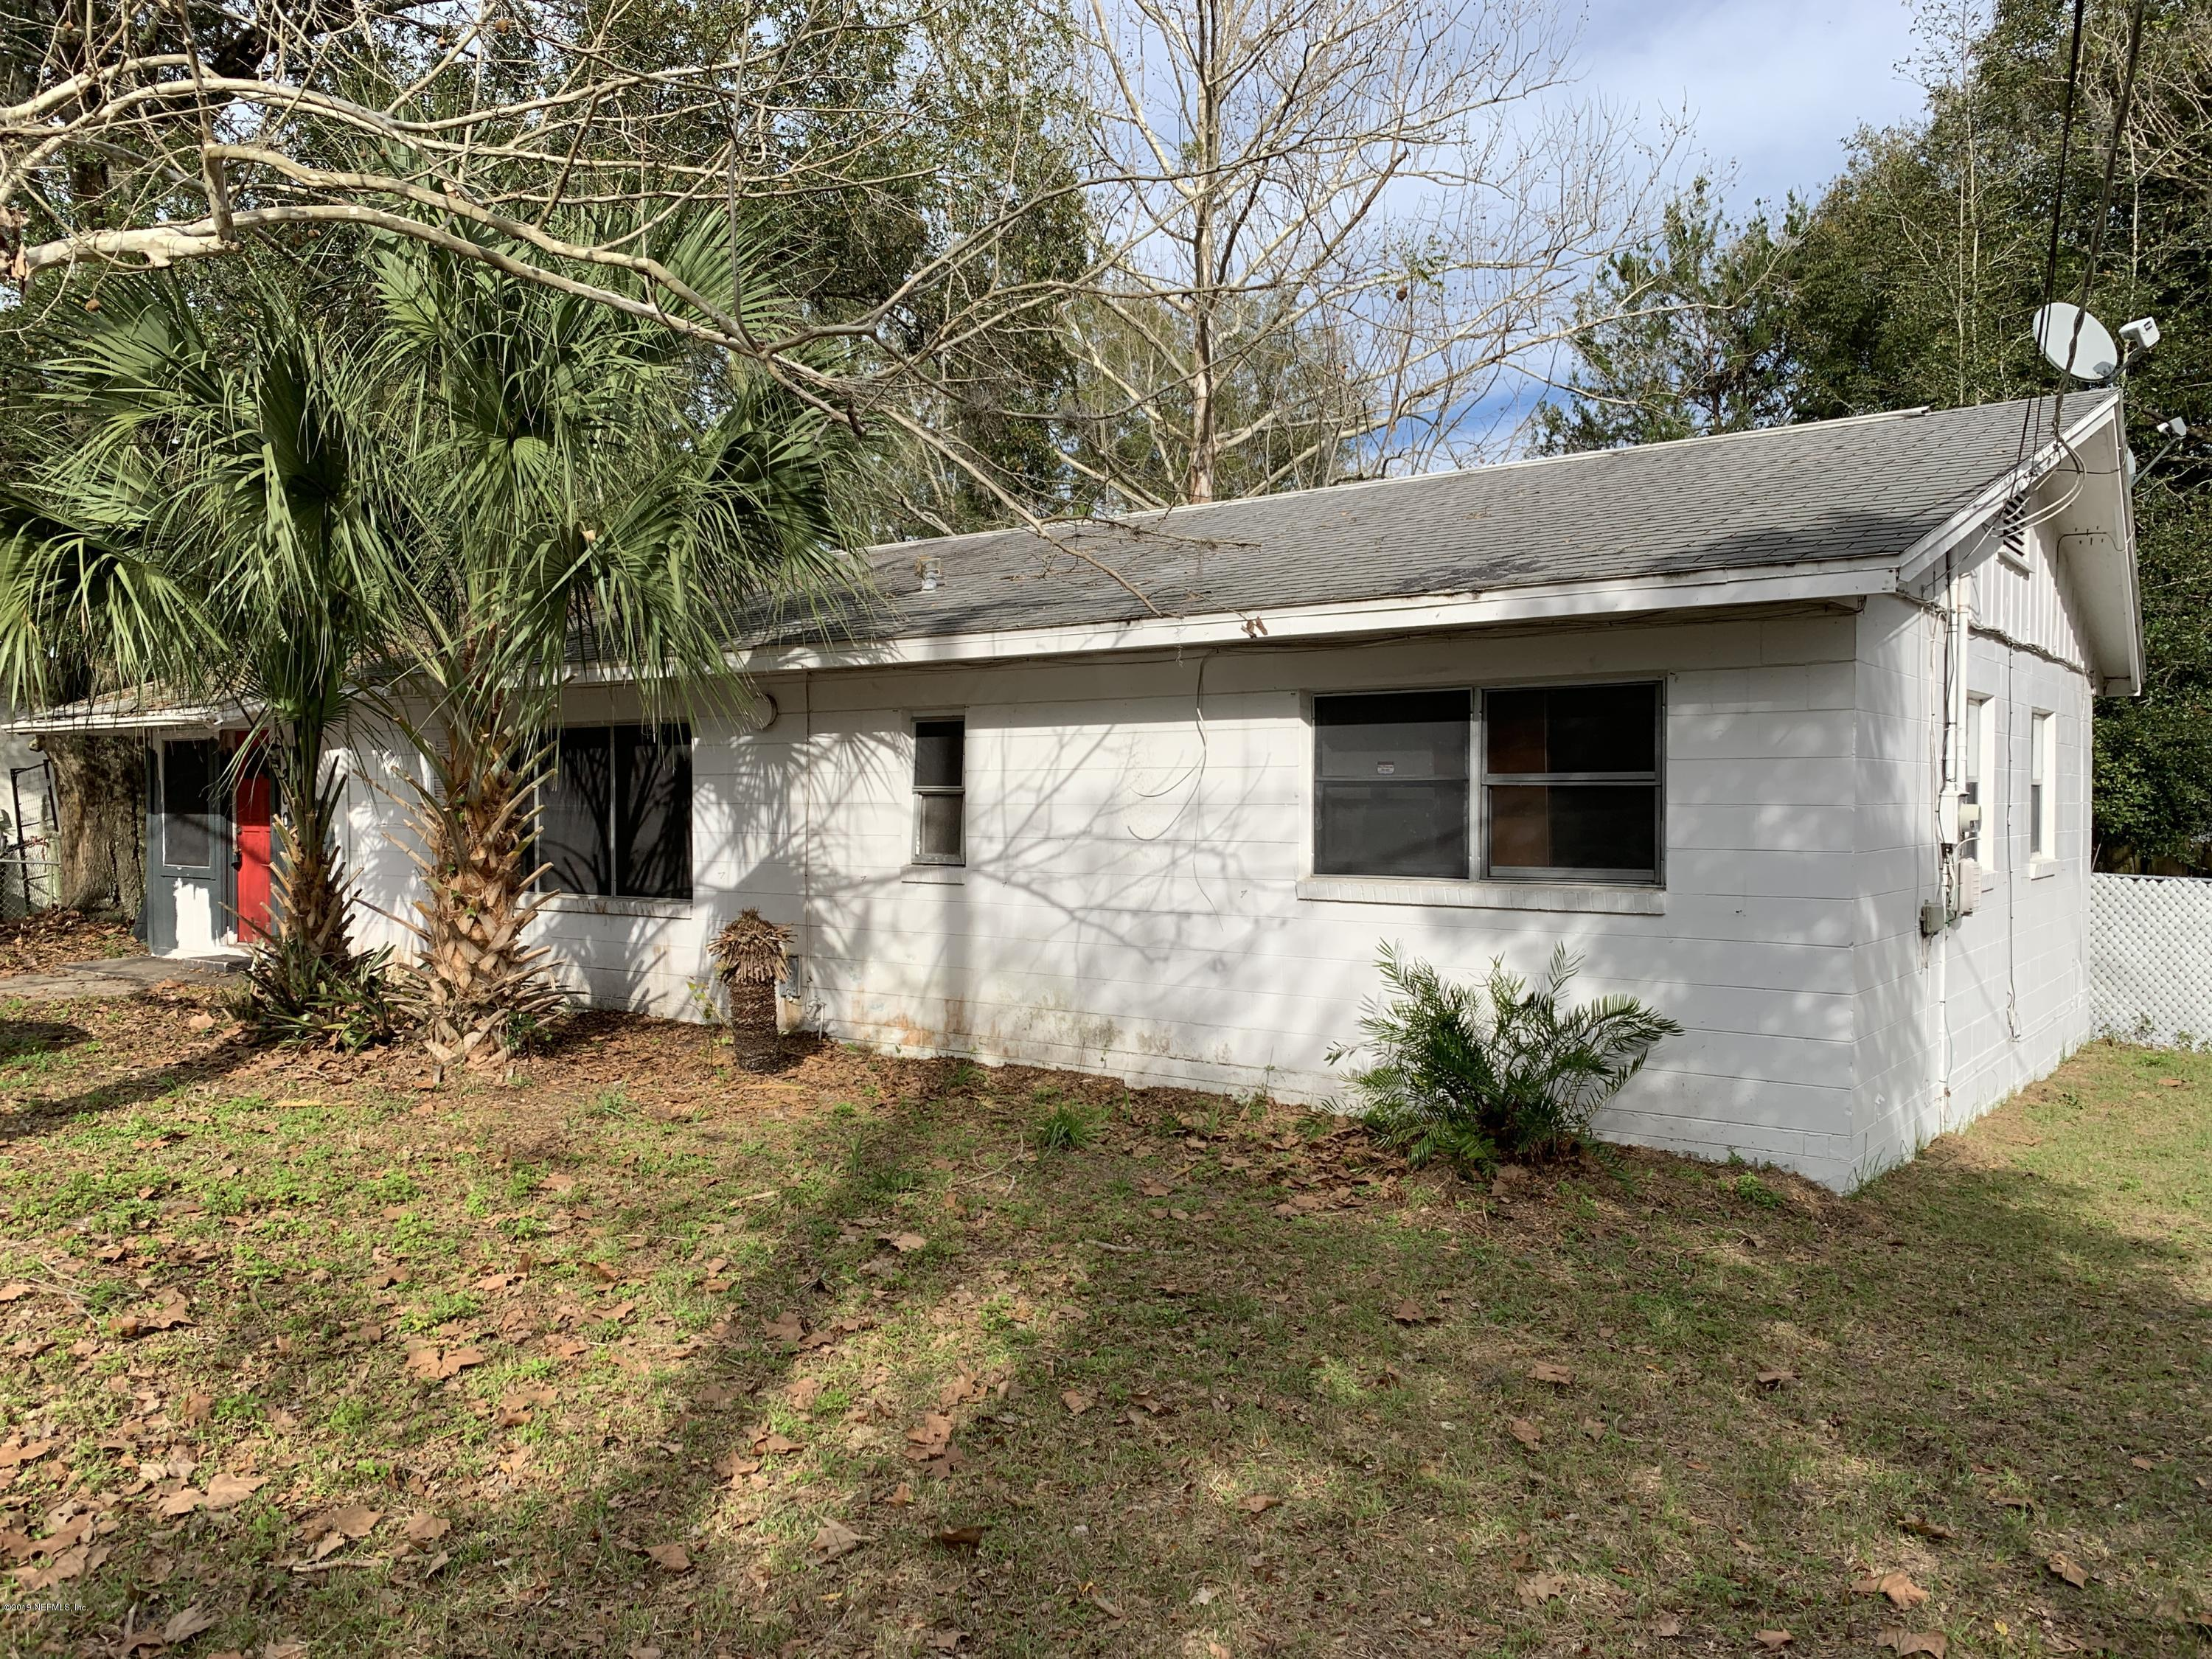 2009 SHERMAN, PALATKA, FLORIDA 32177, 3 Bedrooms Bedrooms, ,1 BathroomBathrooms,Residential - single family,For sale,SHERMAN,979657